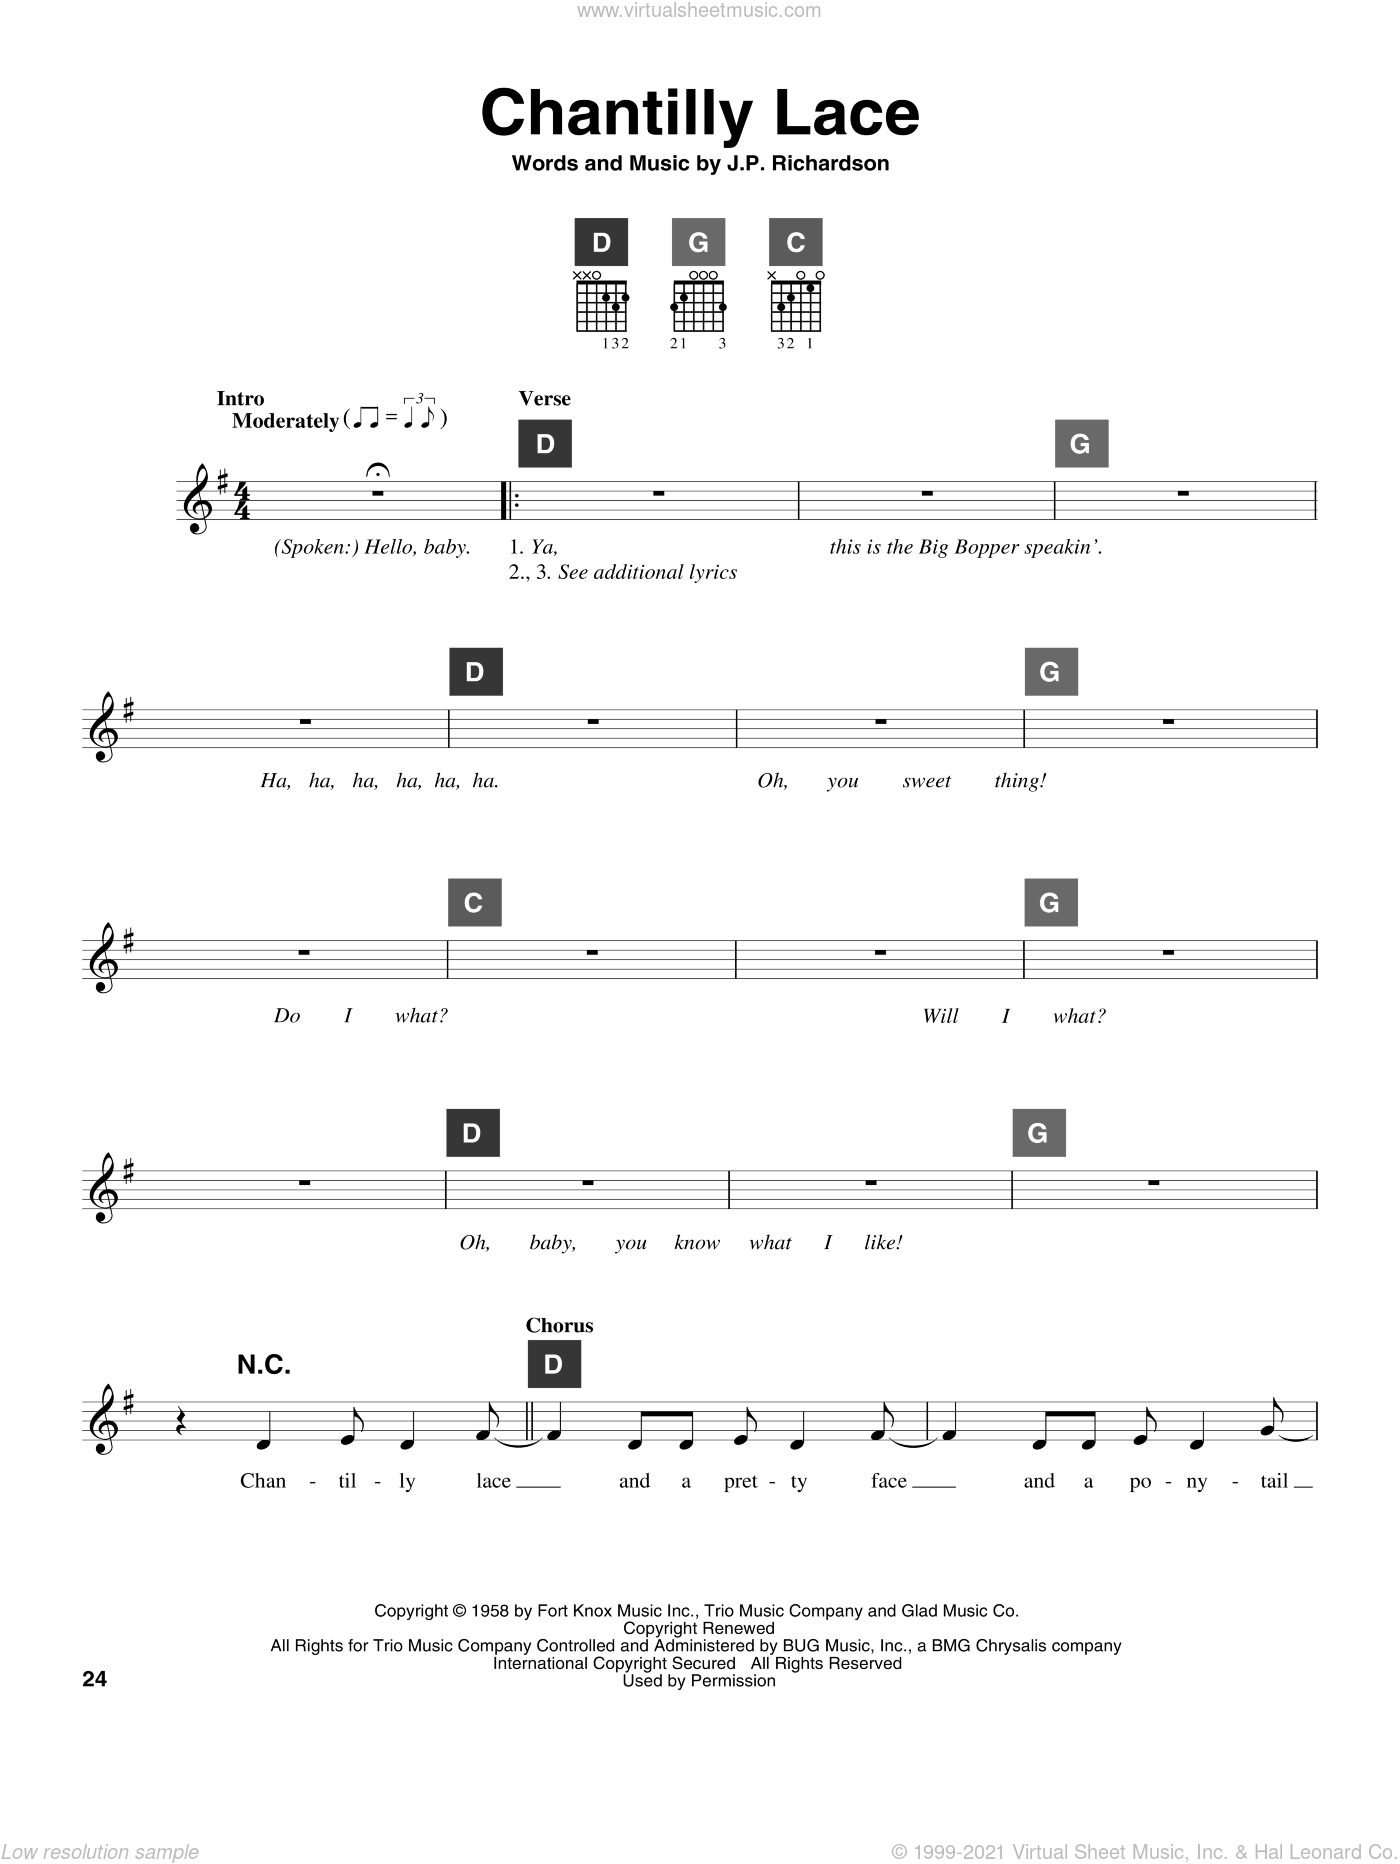 Chantilly Lace sheet music for guitar solo (ChordBuddy system) by Jerry Lee Lewis, Big Bopper and J.P. Richardson, intermediate guitar (ChordBuddy system)